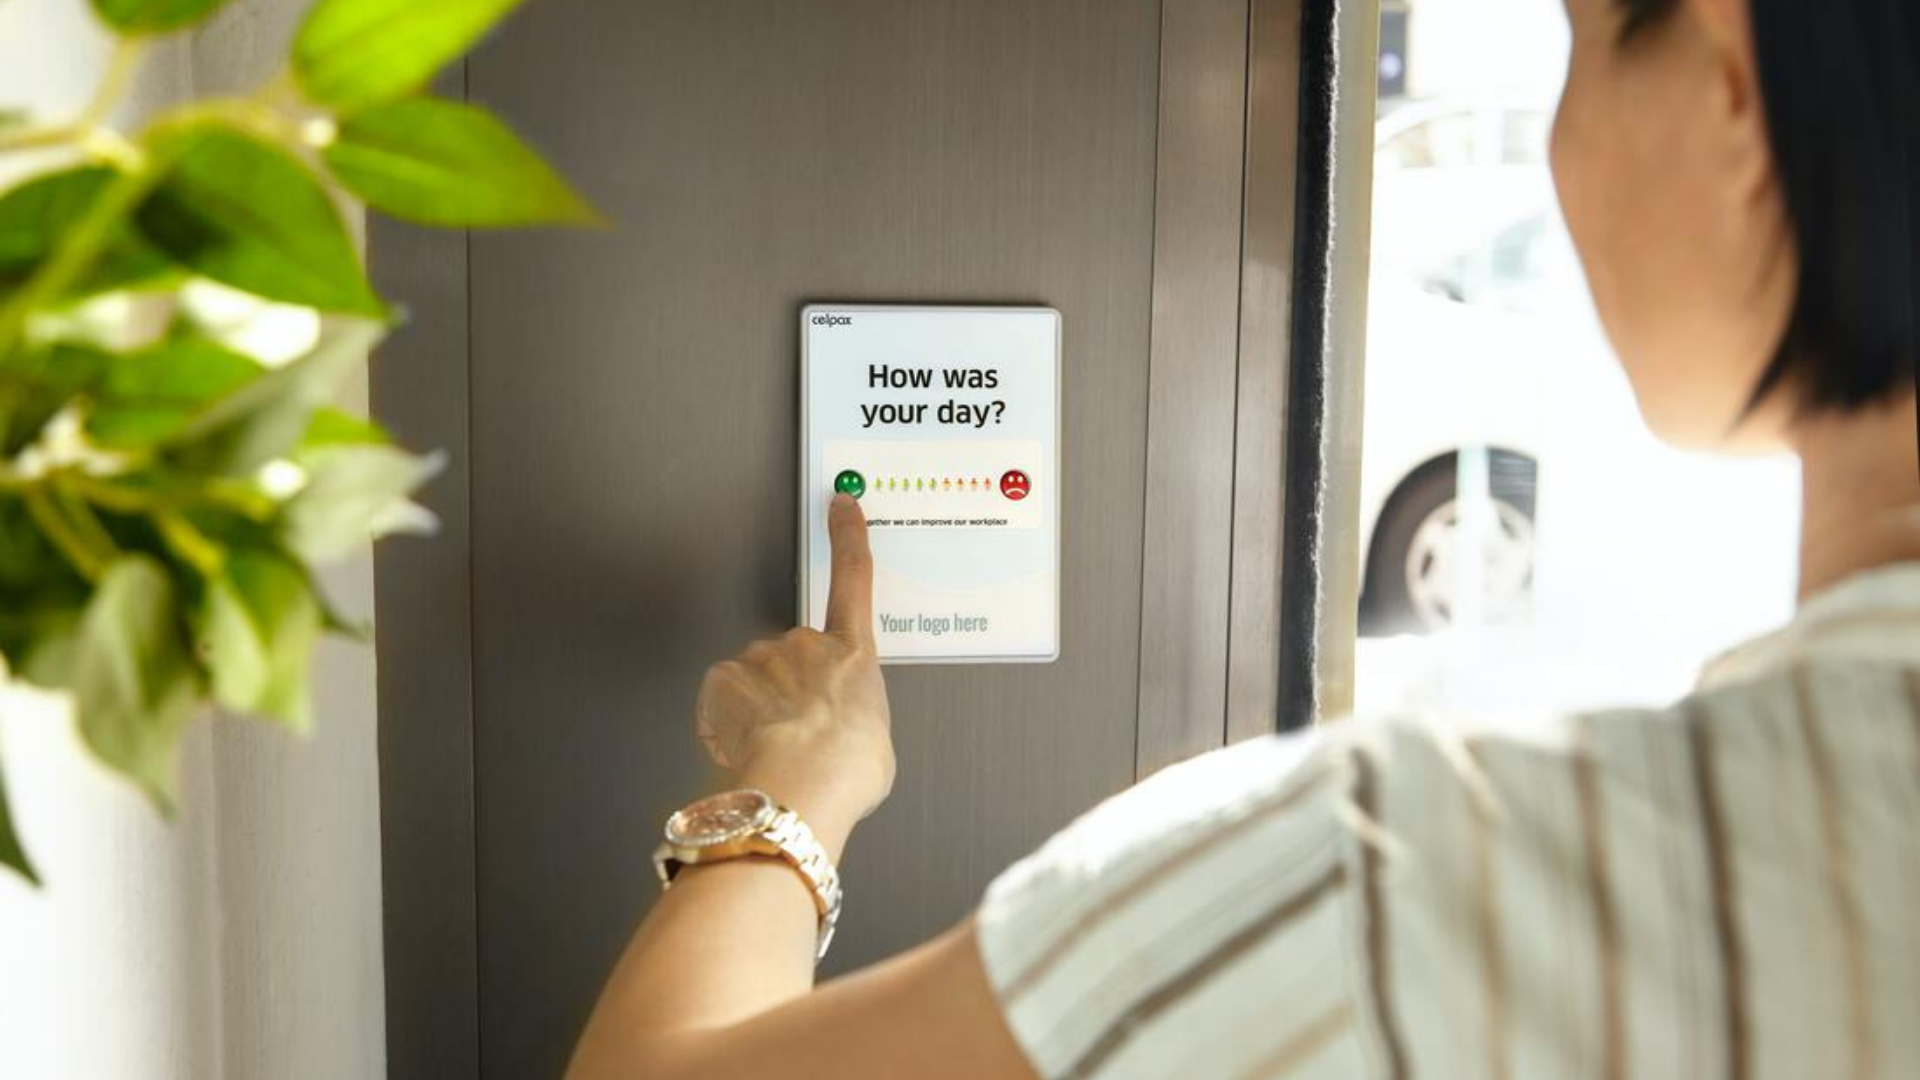 A customer gives feedback using a button on the wall